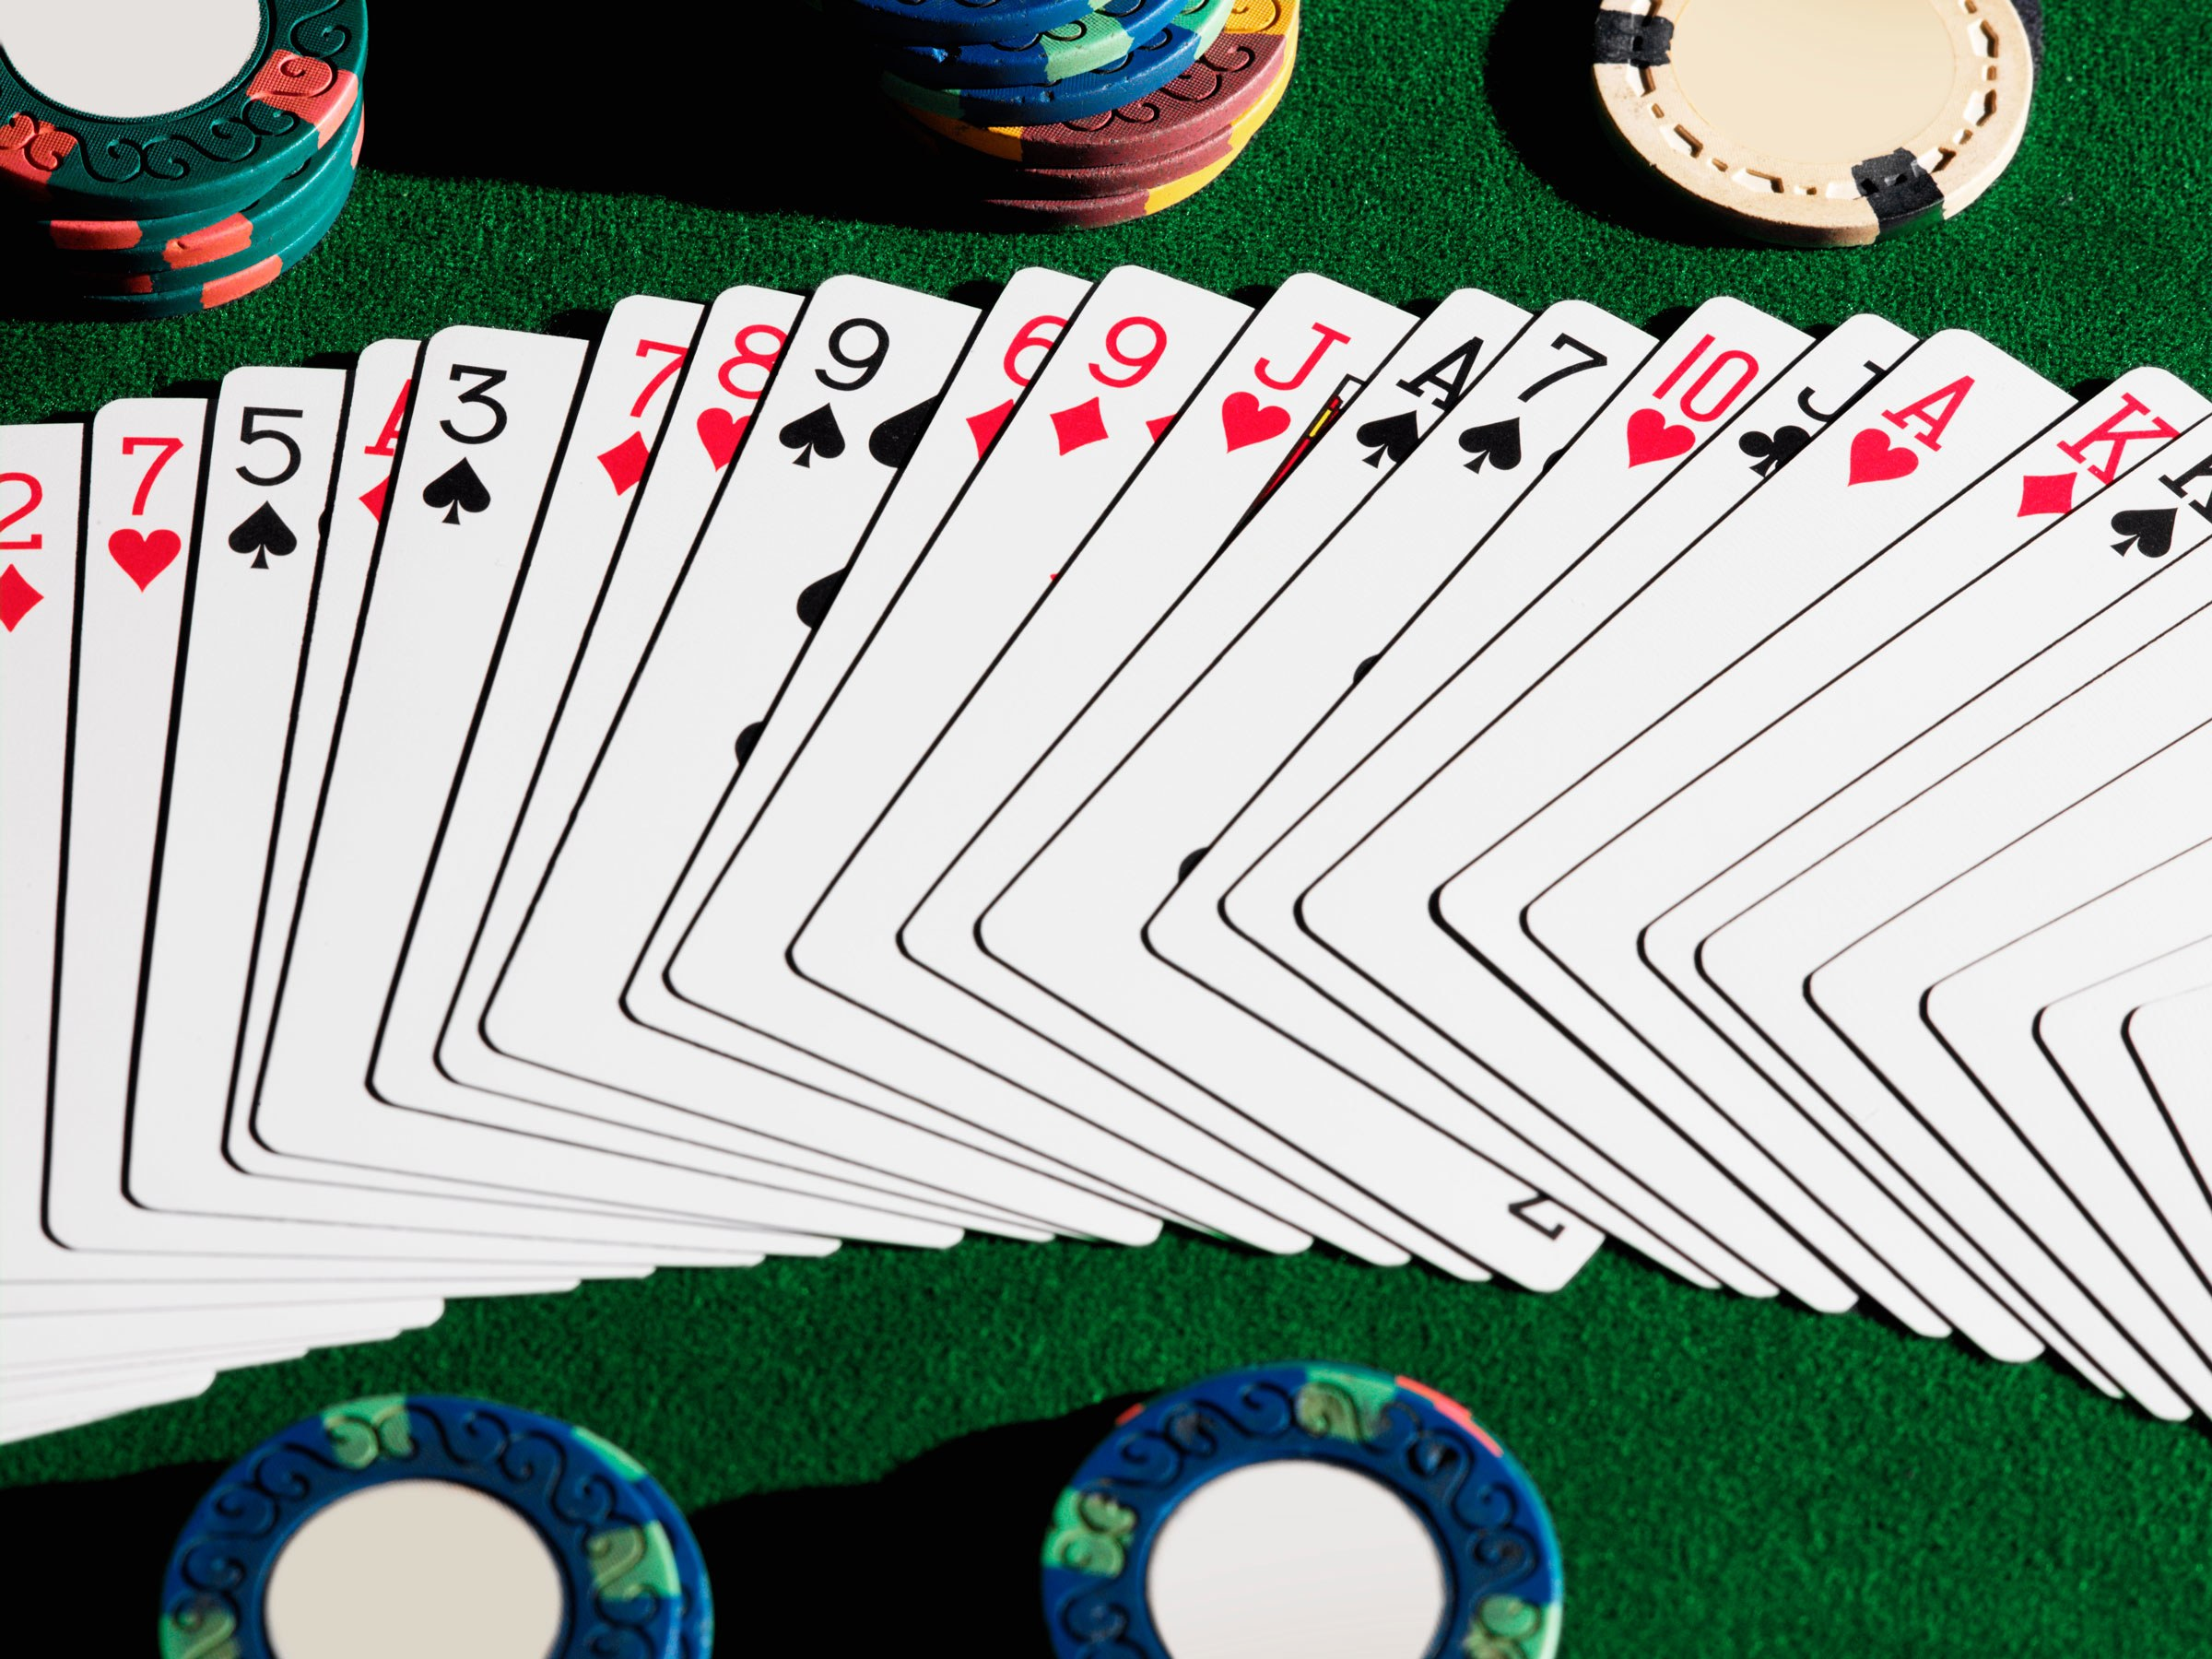 Online poker games - Know the facts bankroll to get profits